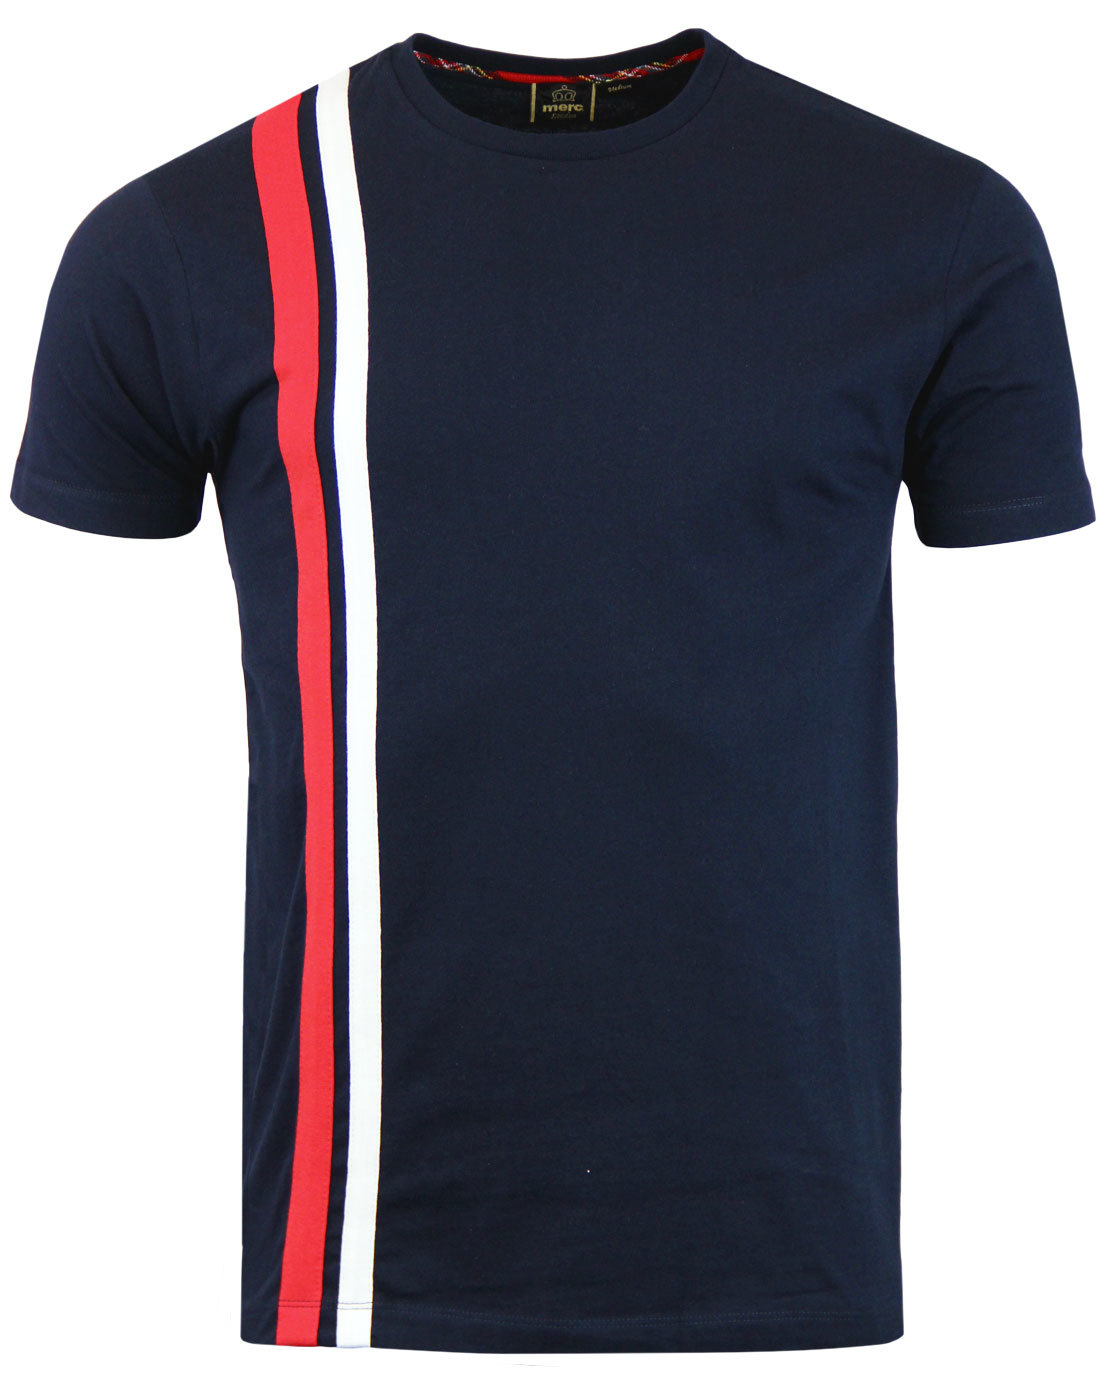 Belmont MERC Retro Mod Cut & Sew Racing Stripe Tee